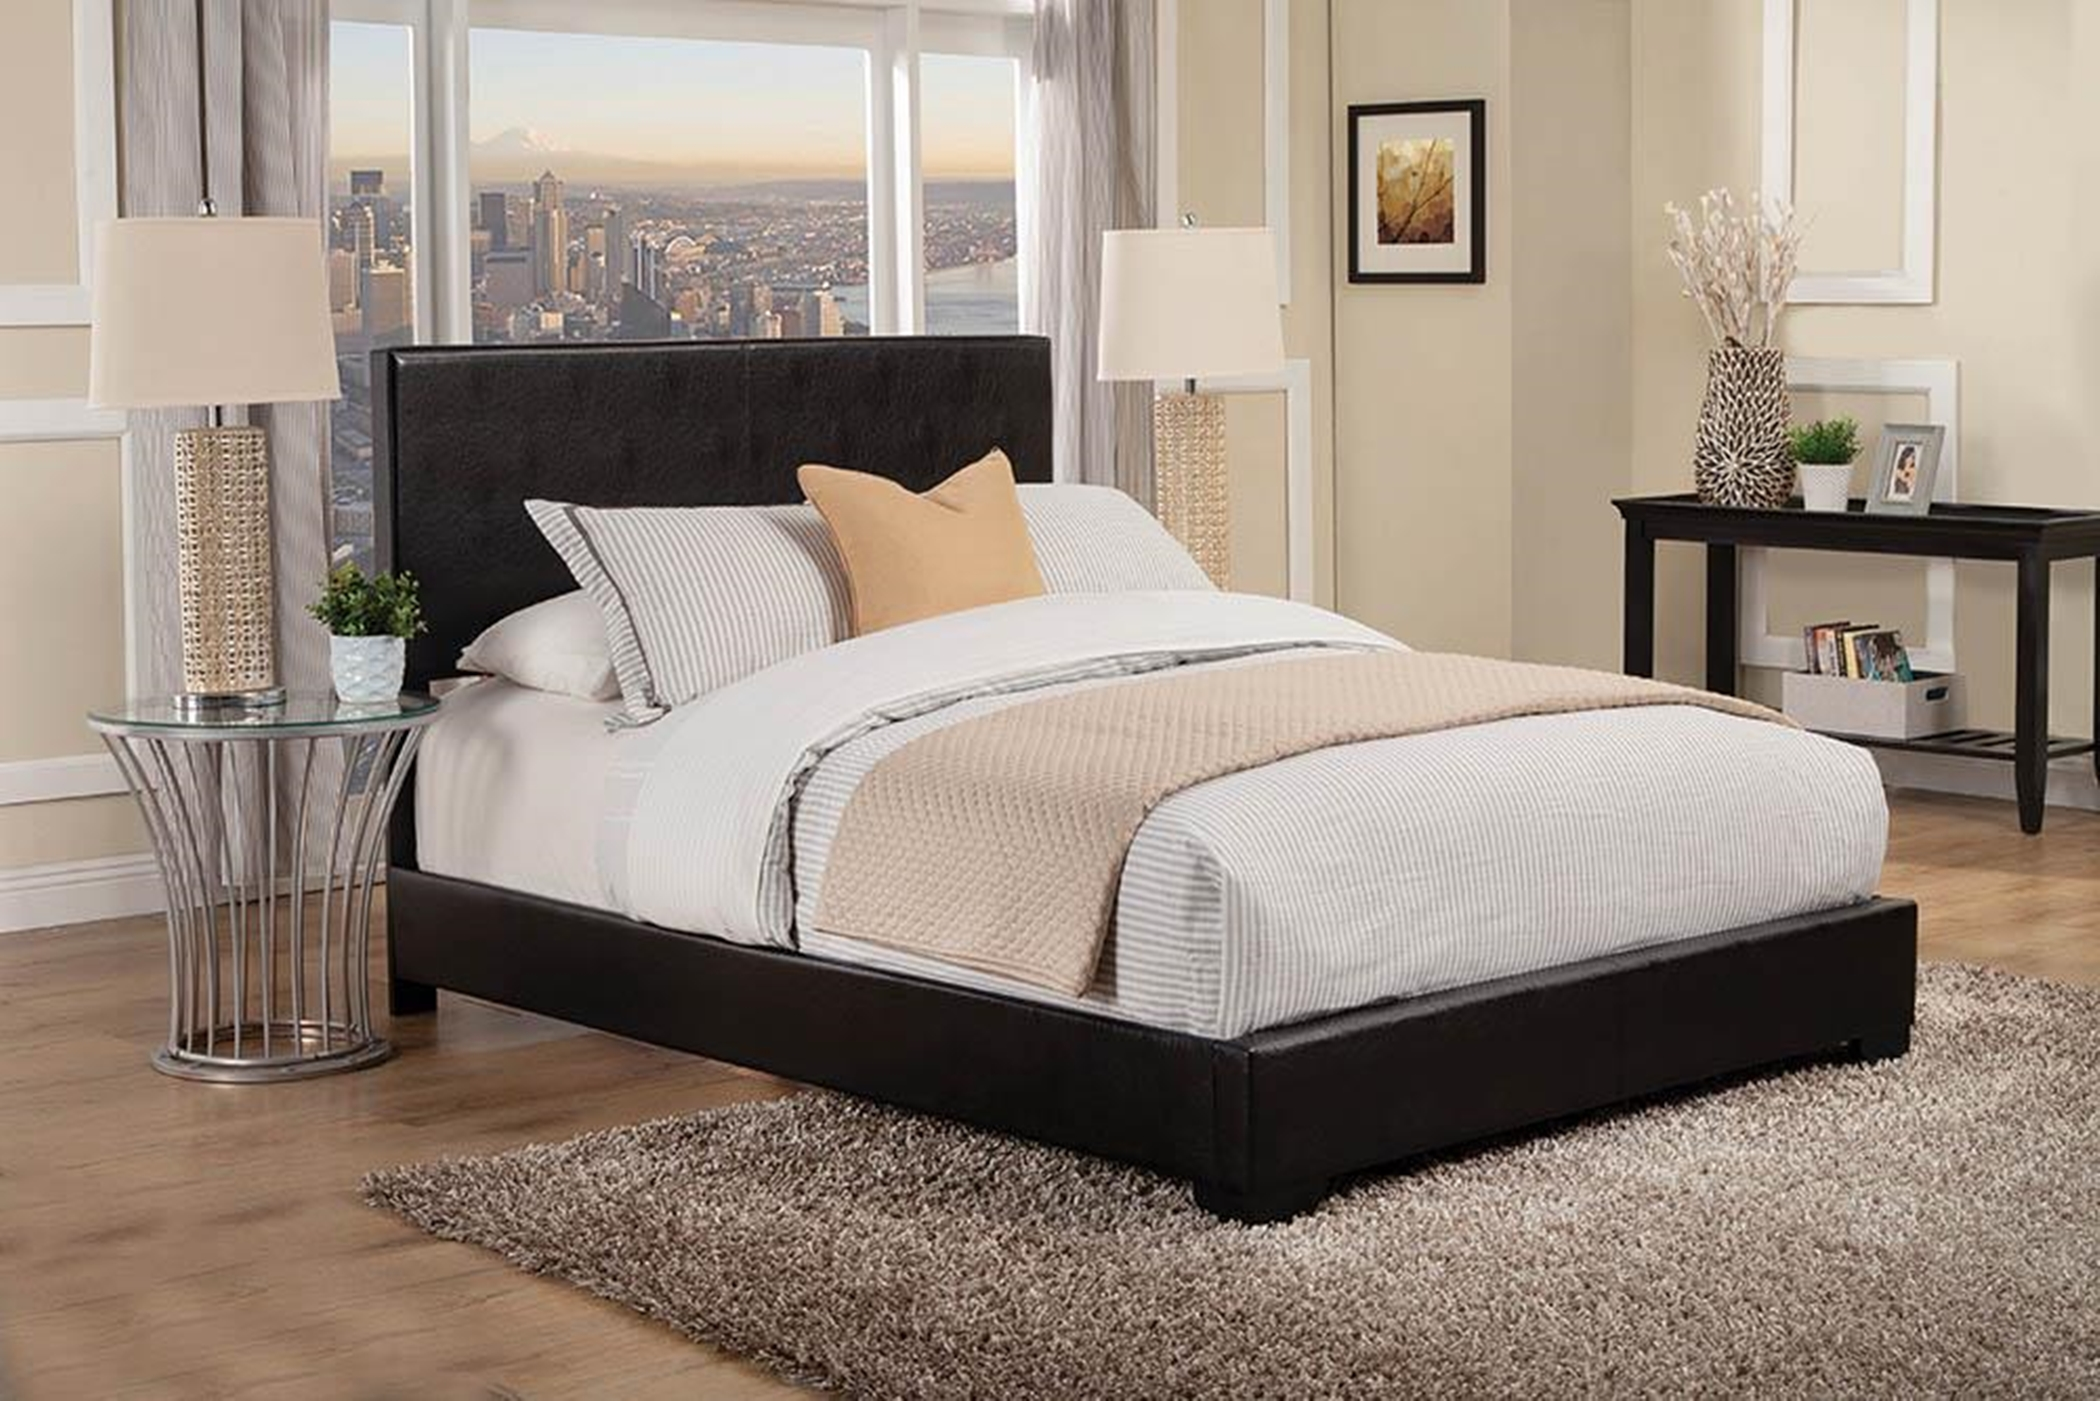 Conner Casual Black Upholstered Cal. King Bed